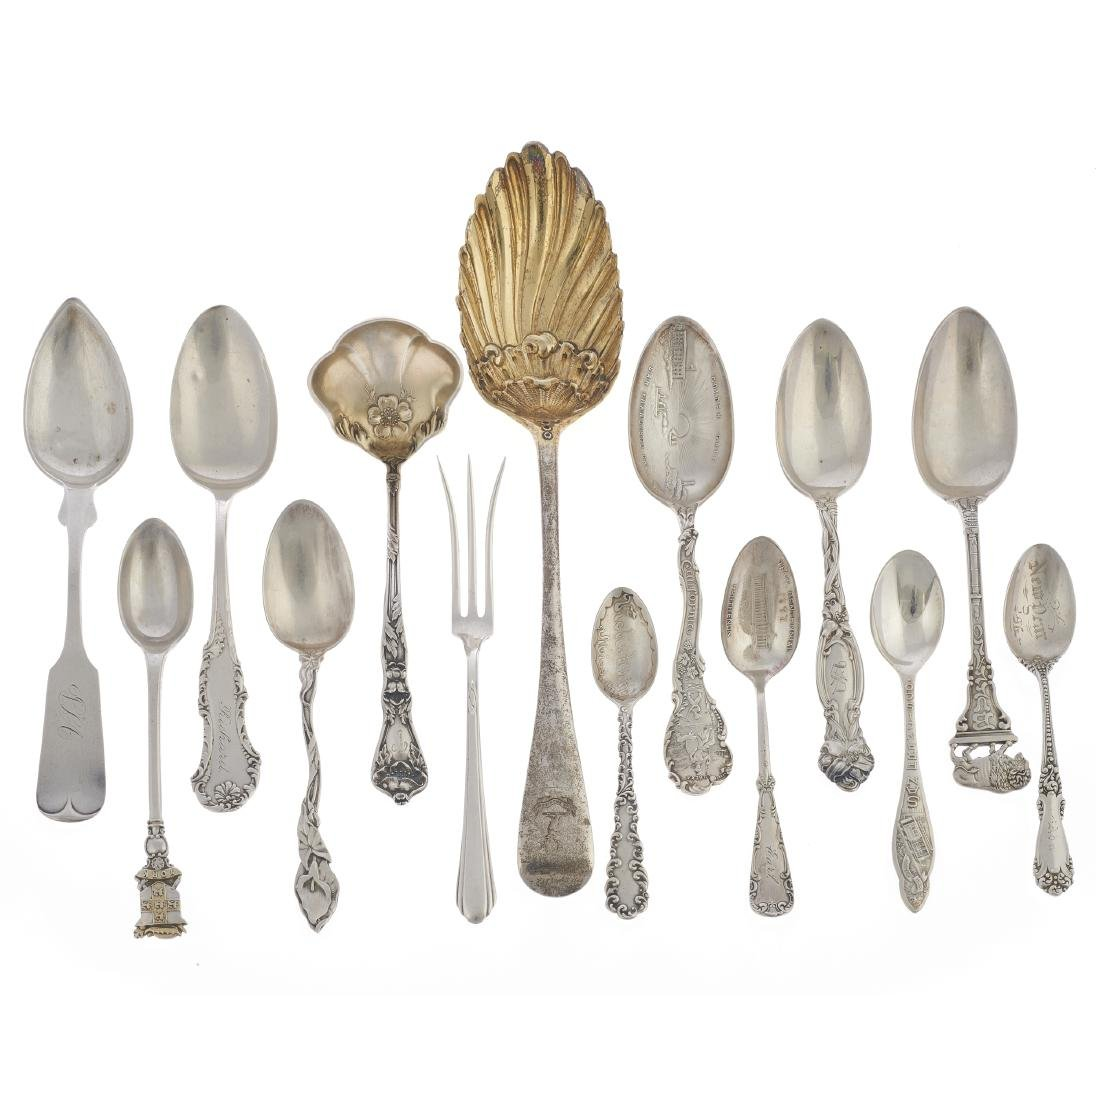 Assorted sterling silver utensils